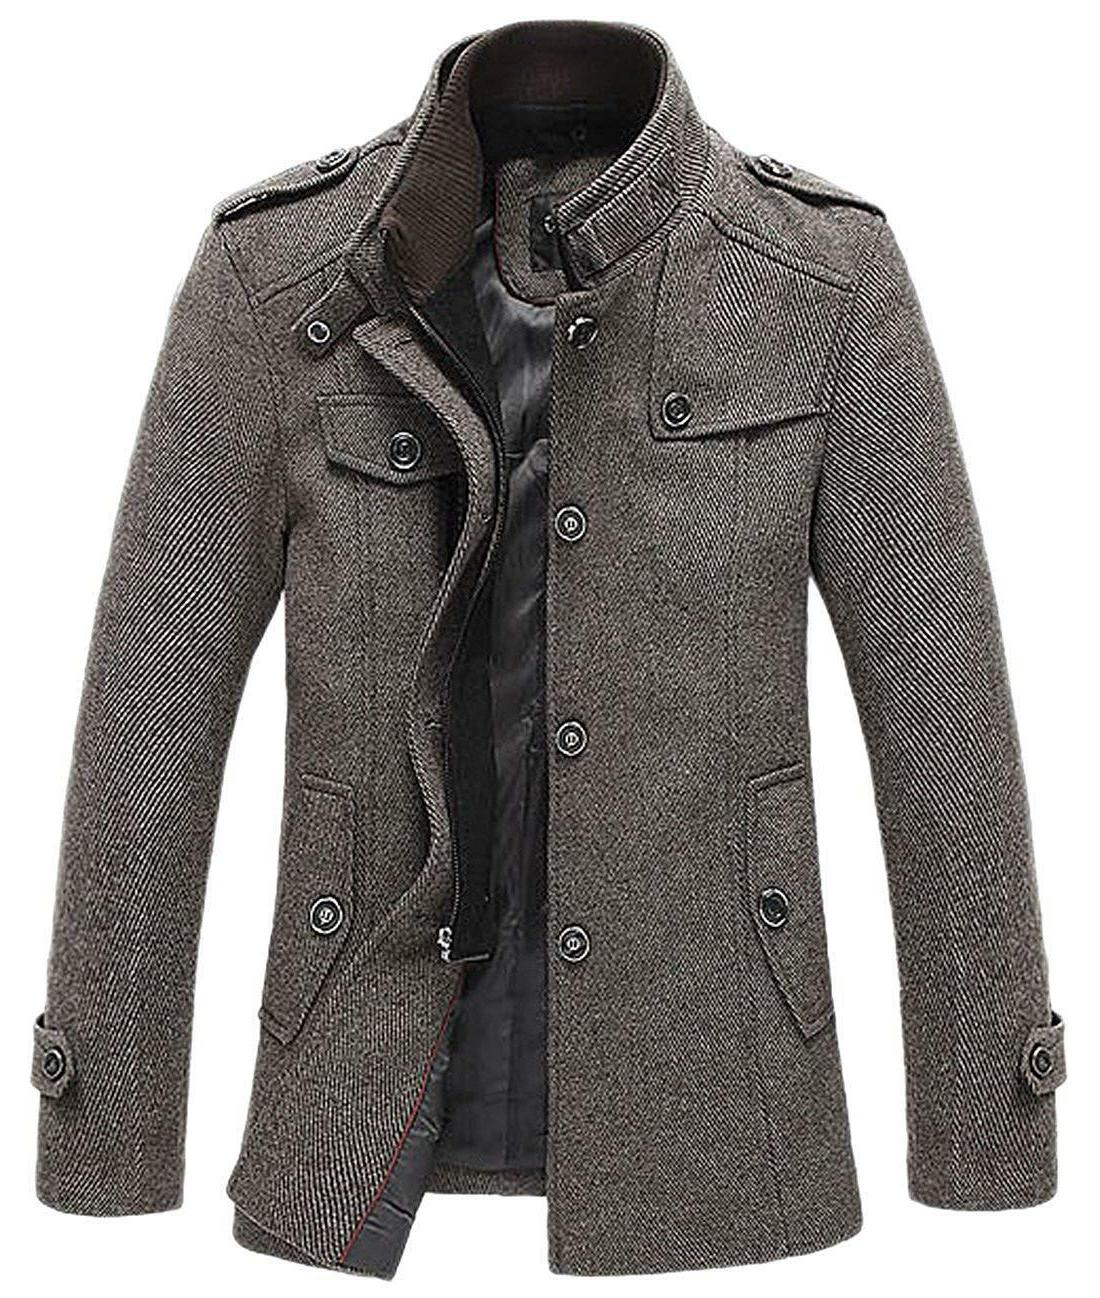 Chouyatou Wool Blend Breasted Military Peacoat